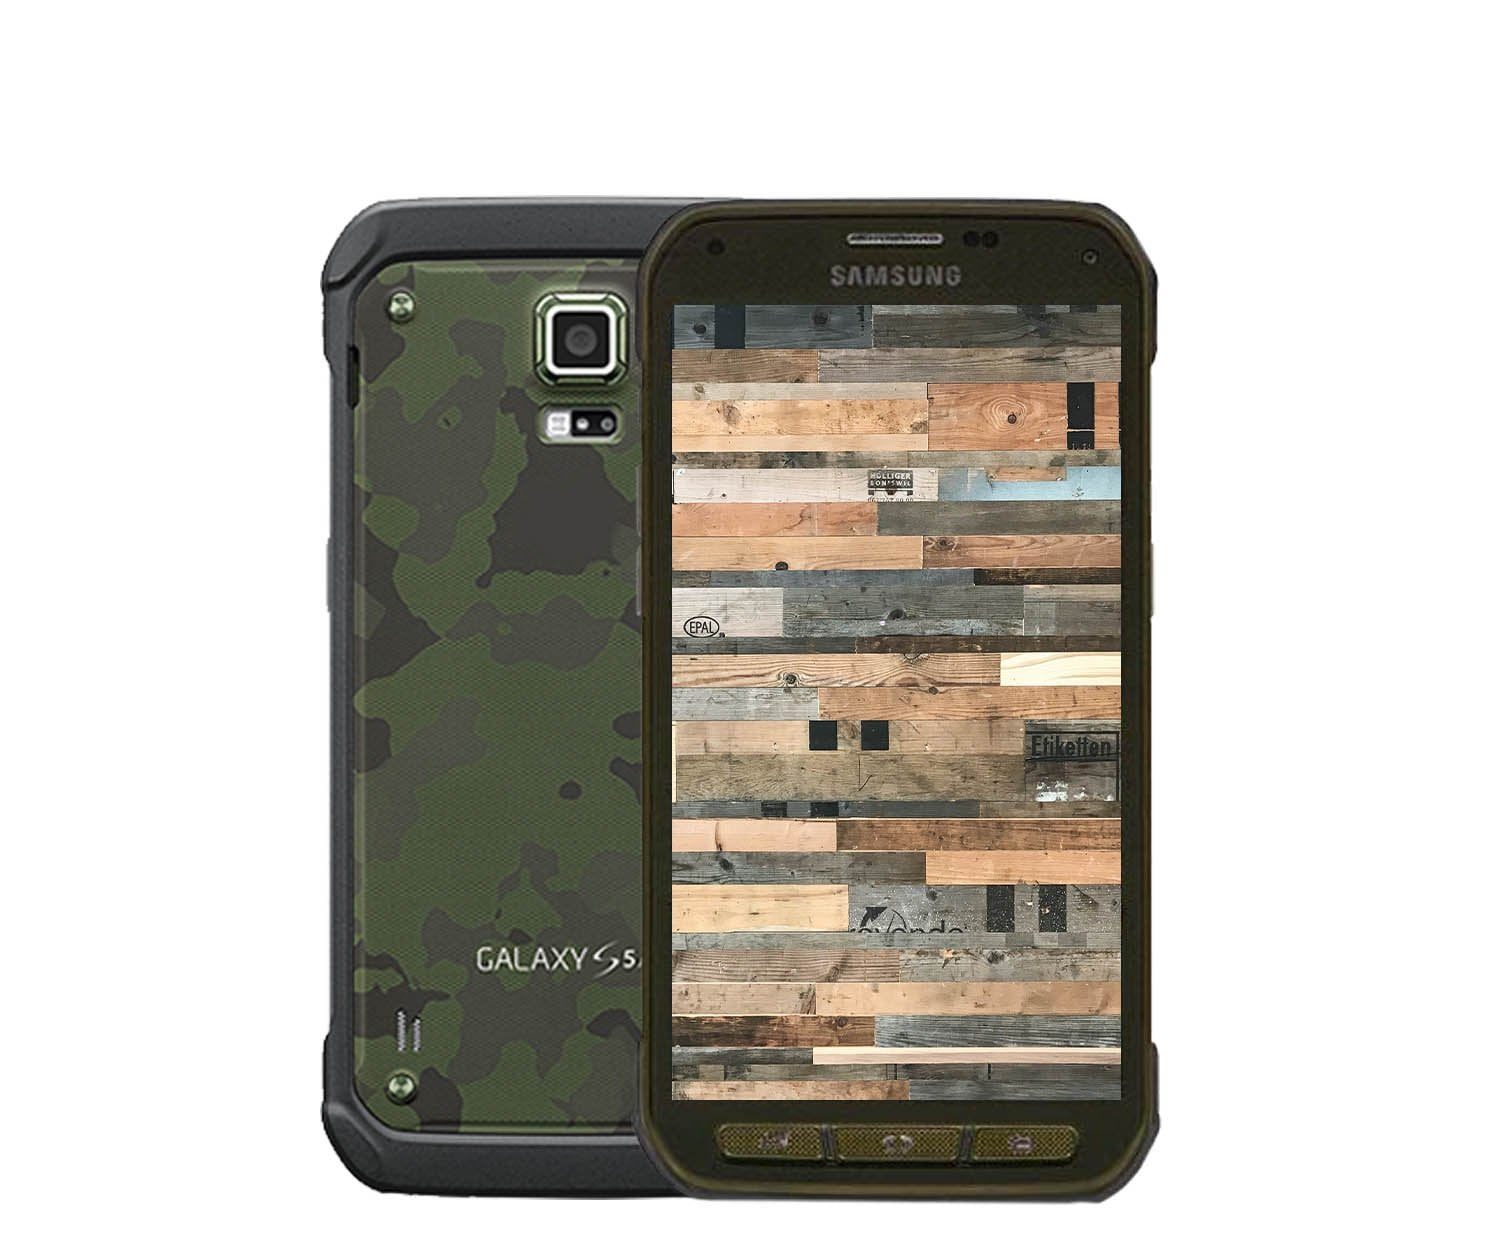 samsung galaxy s5 active 16 gb gr n. Black Bedroom Furniture Sets. Home Design Ideas